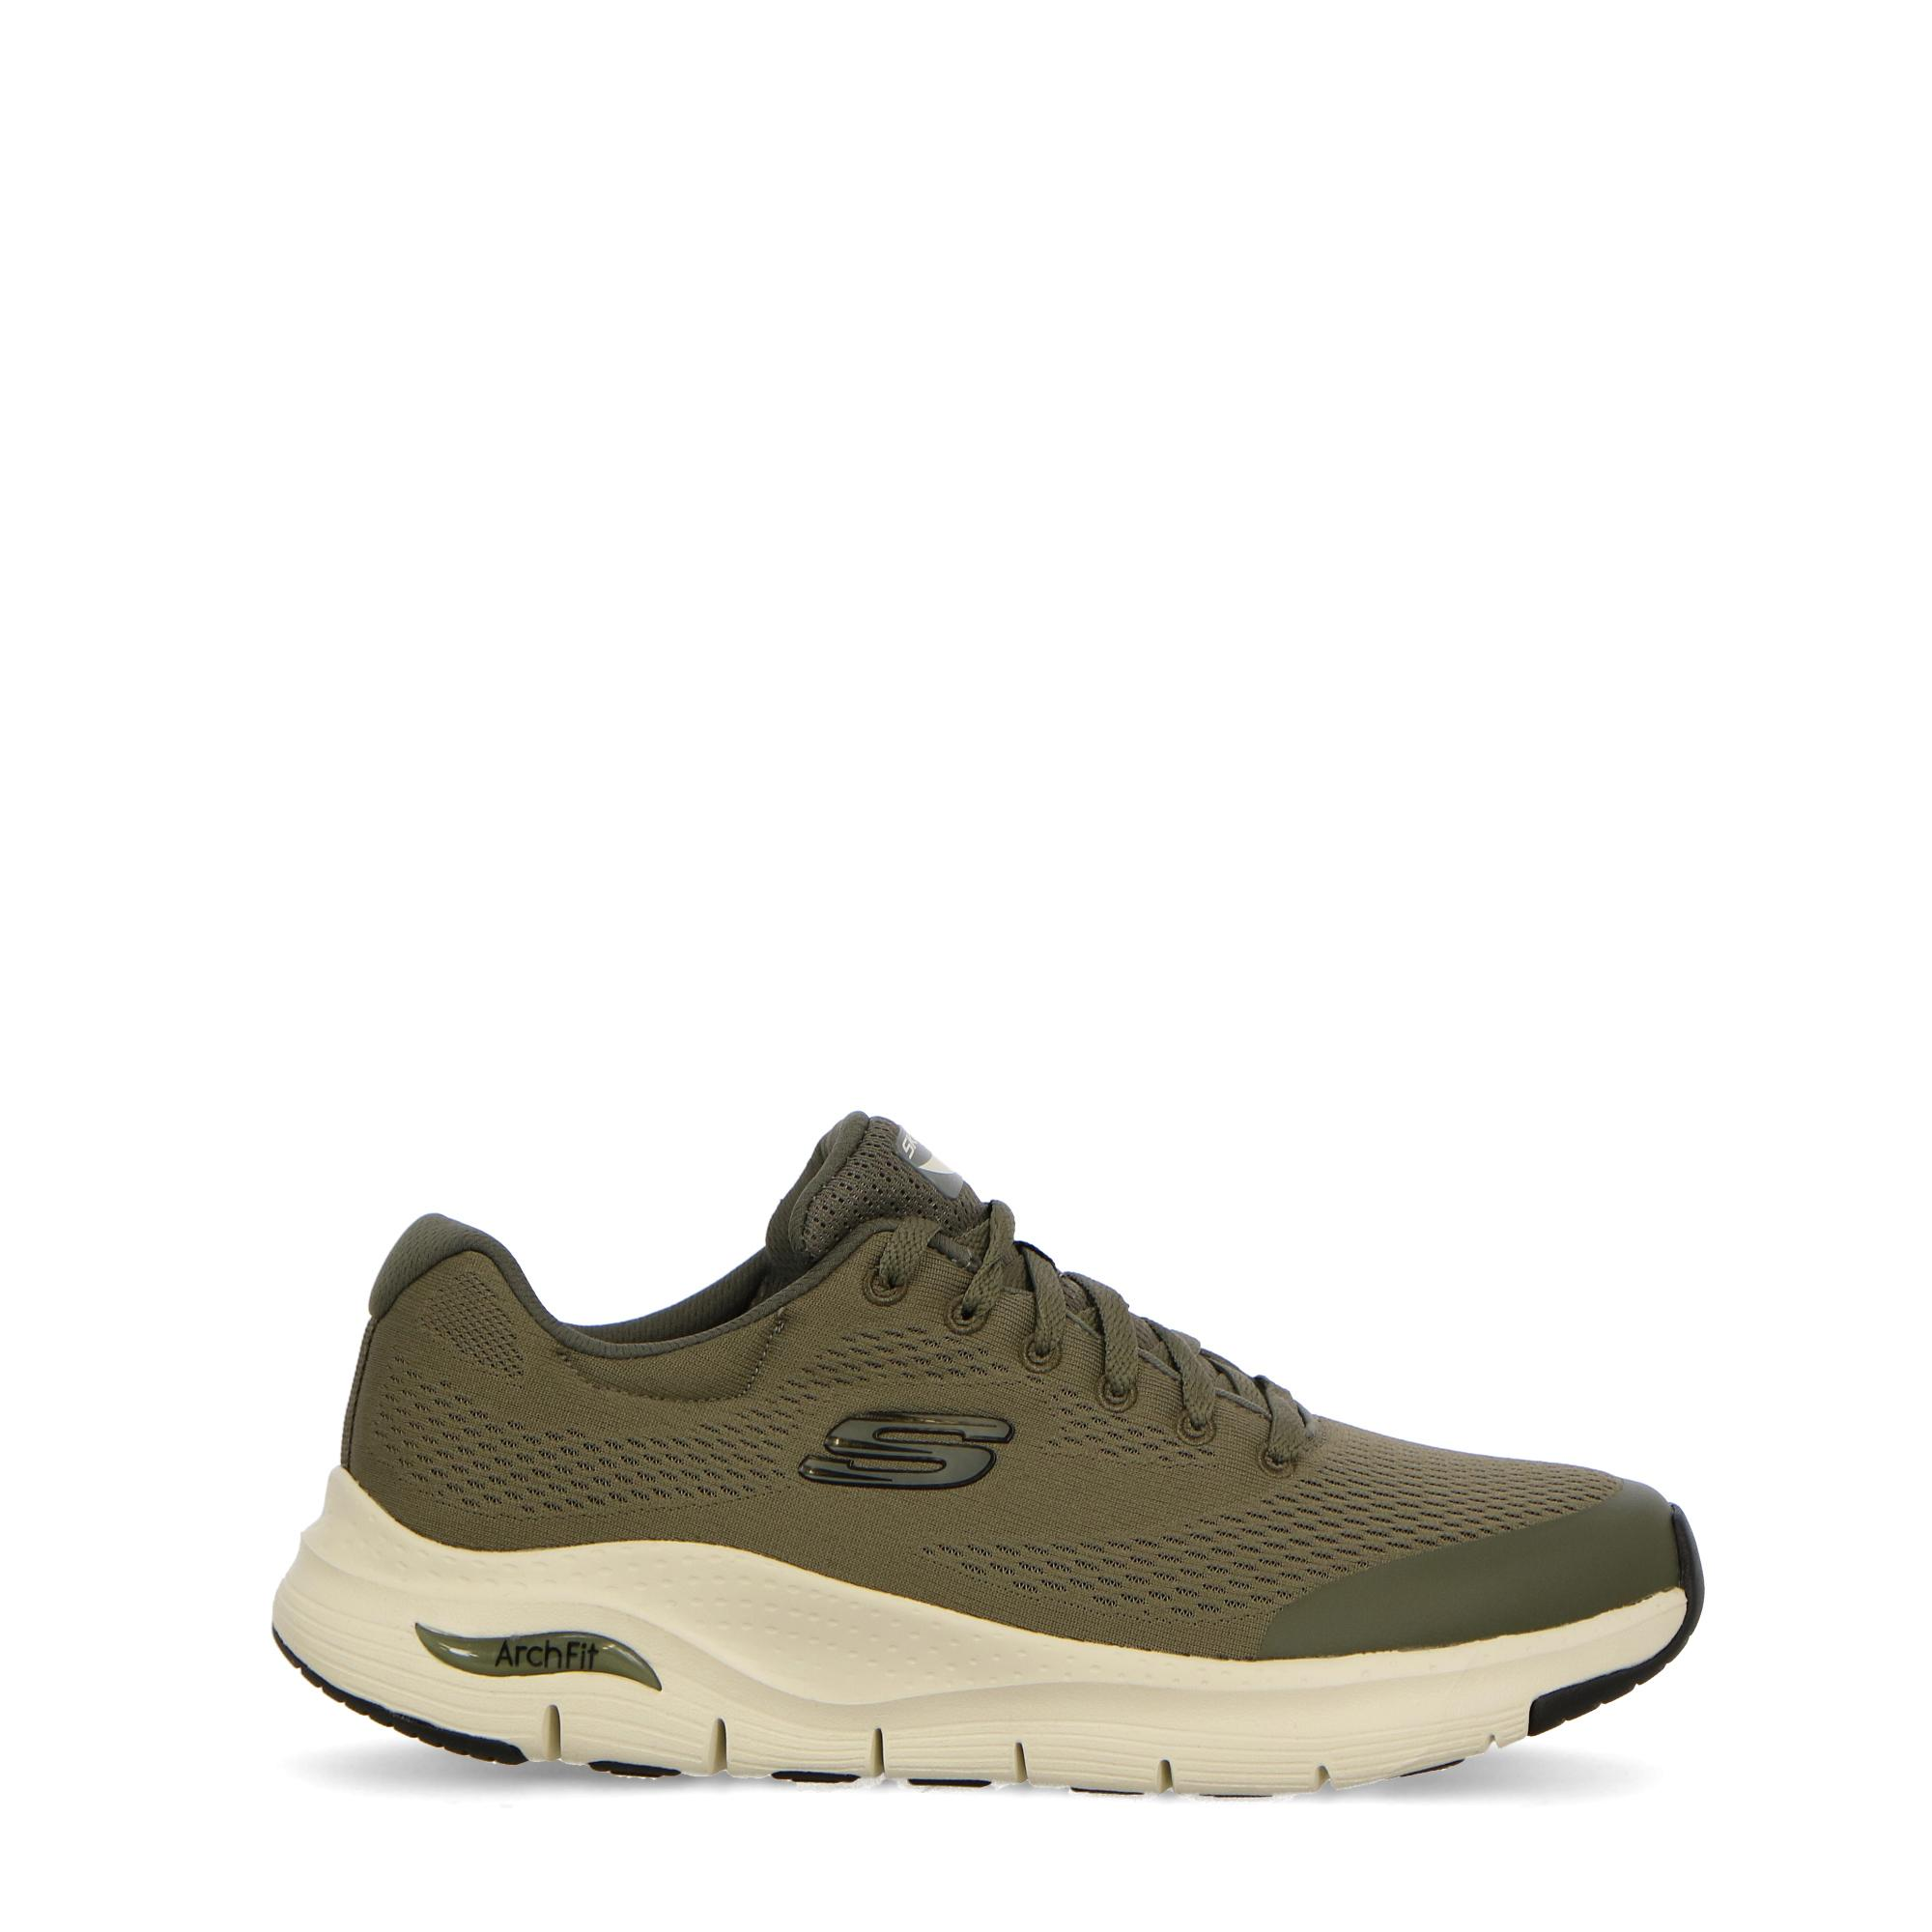 Skechers Arch Fit OLIVE